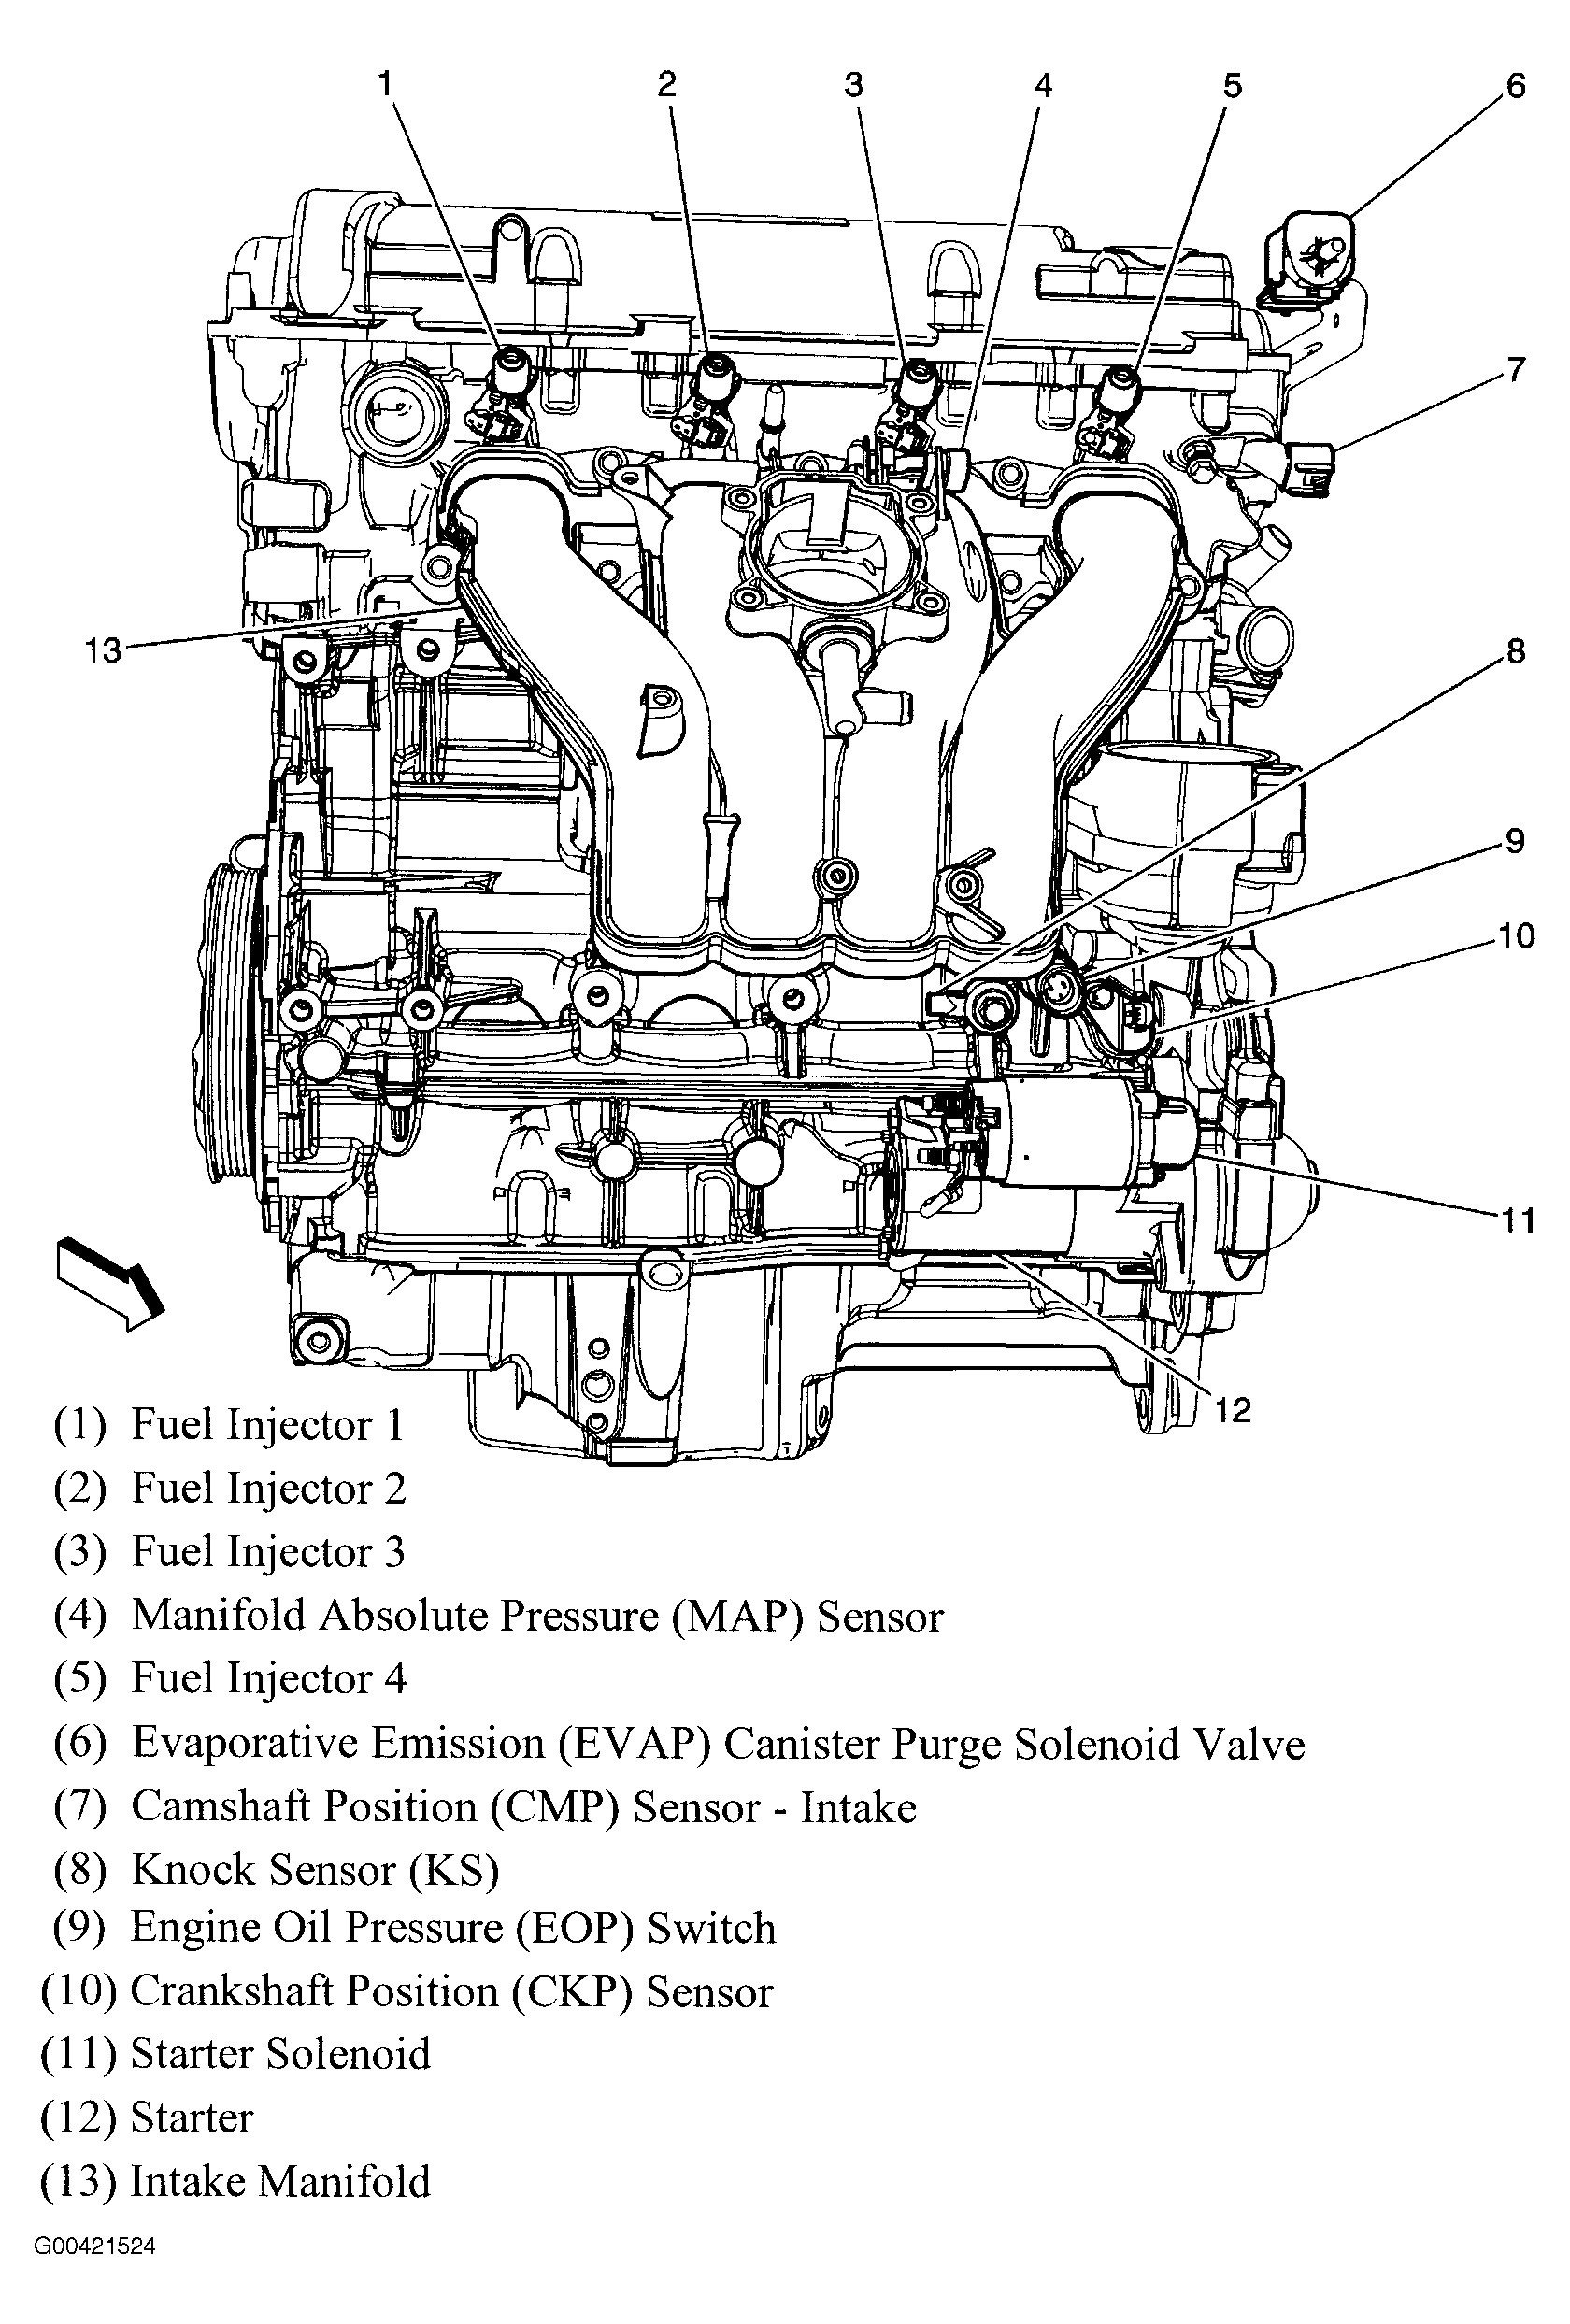 2006 Grand Prix Engine Diagram Wiring Diagram Page Kid Owner Kid Owner Granballodicomo It